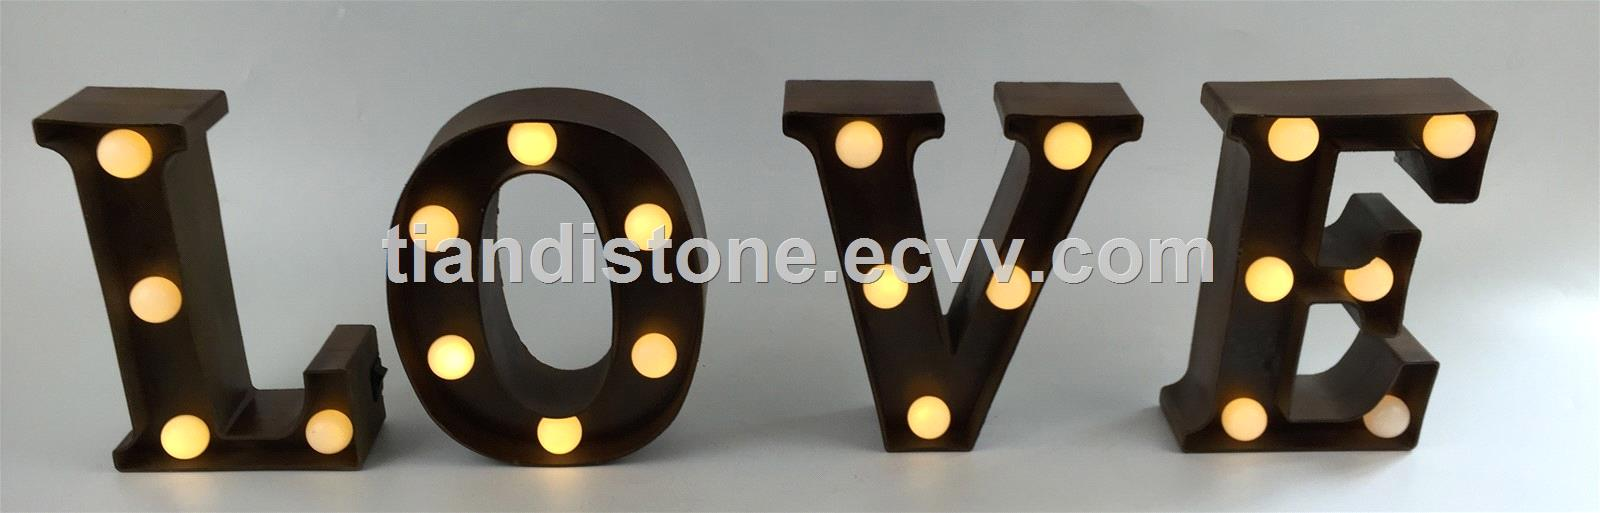 New Arrival: Letter with LED Lighting